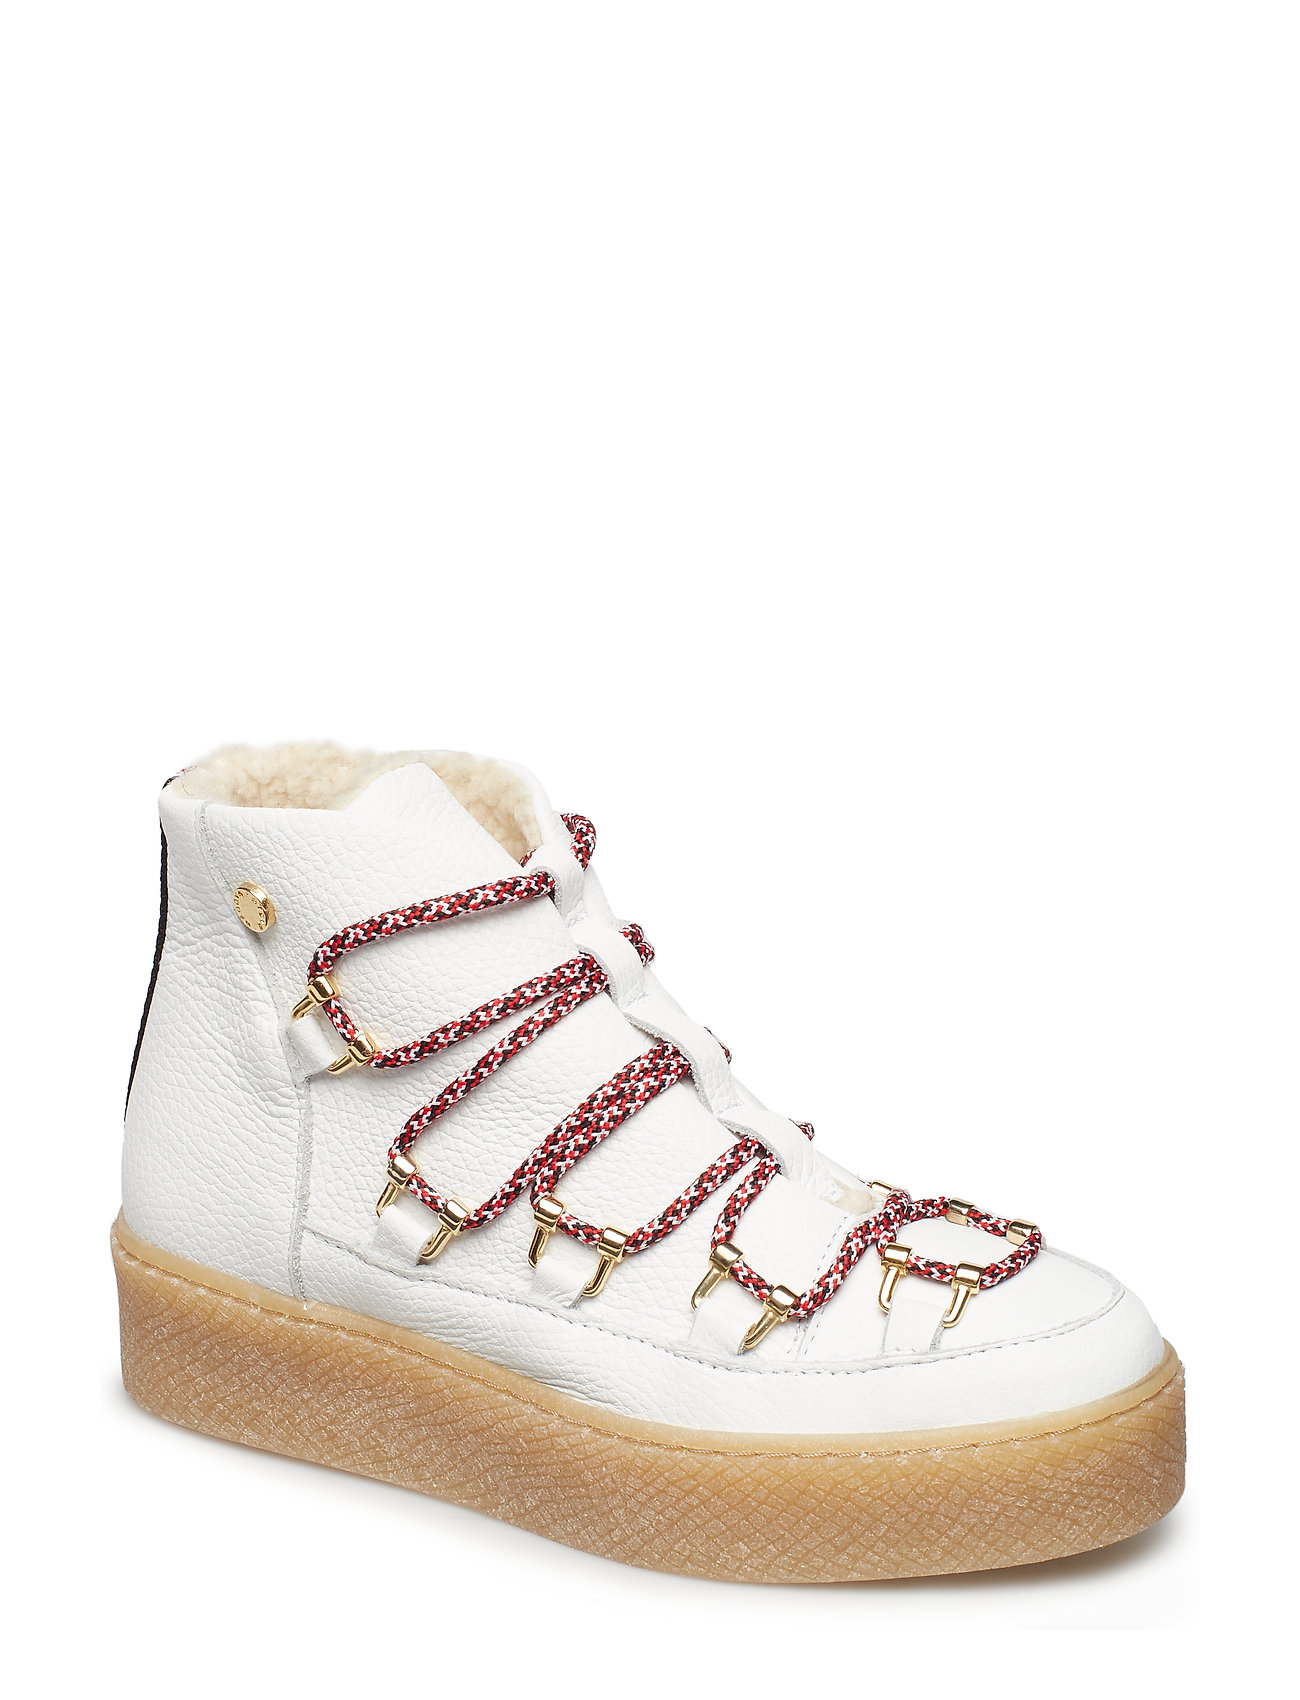 Steve Madden Wandolo Sneaker WHITE LEATHER  abea048817